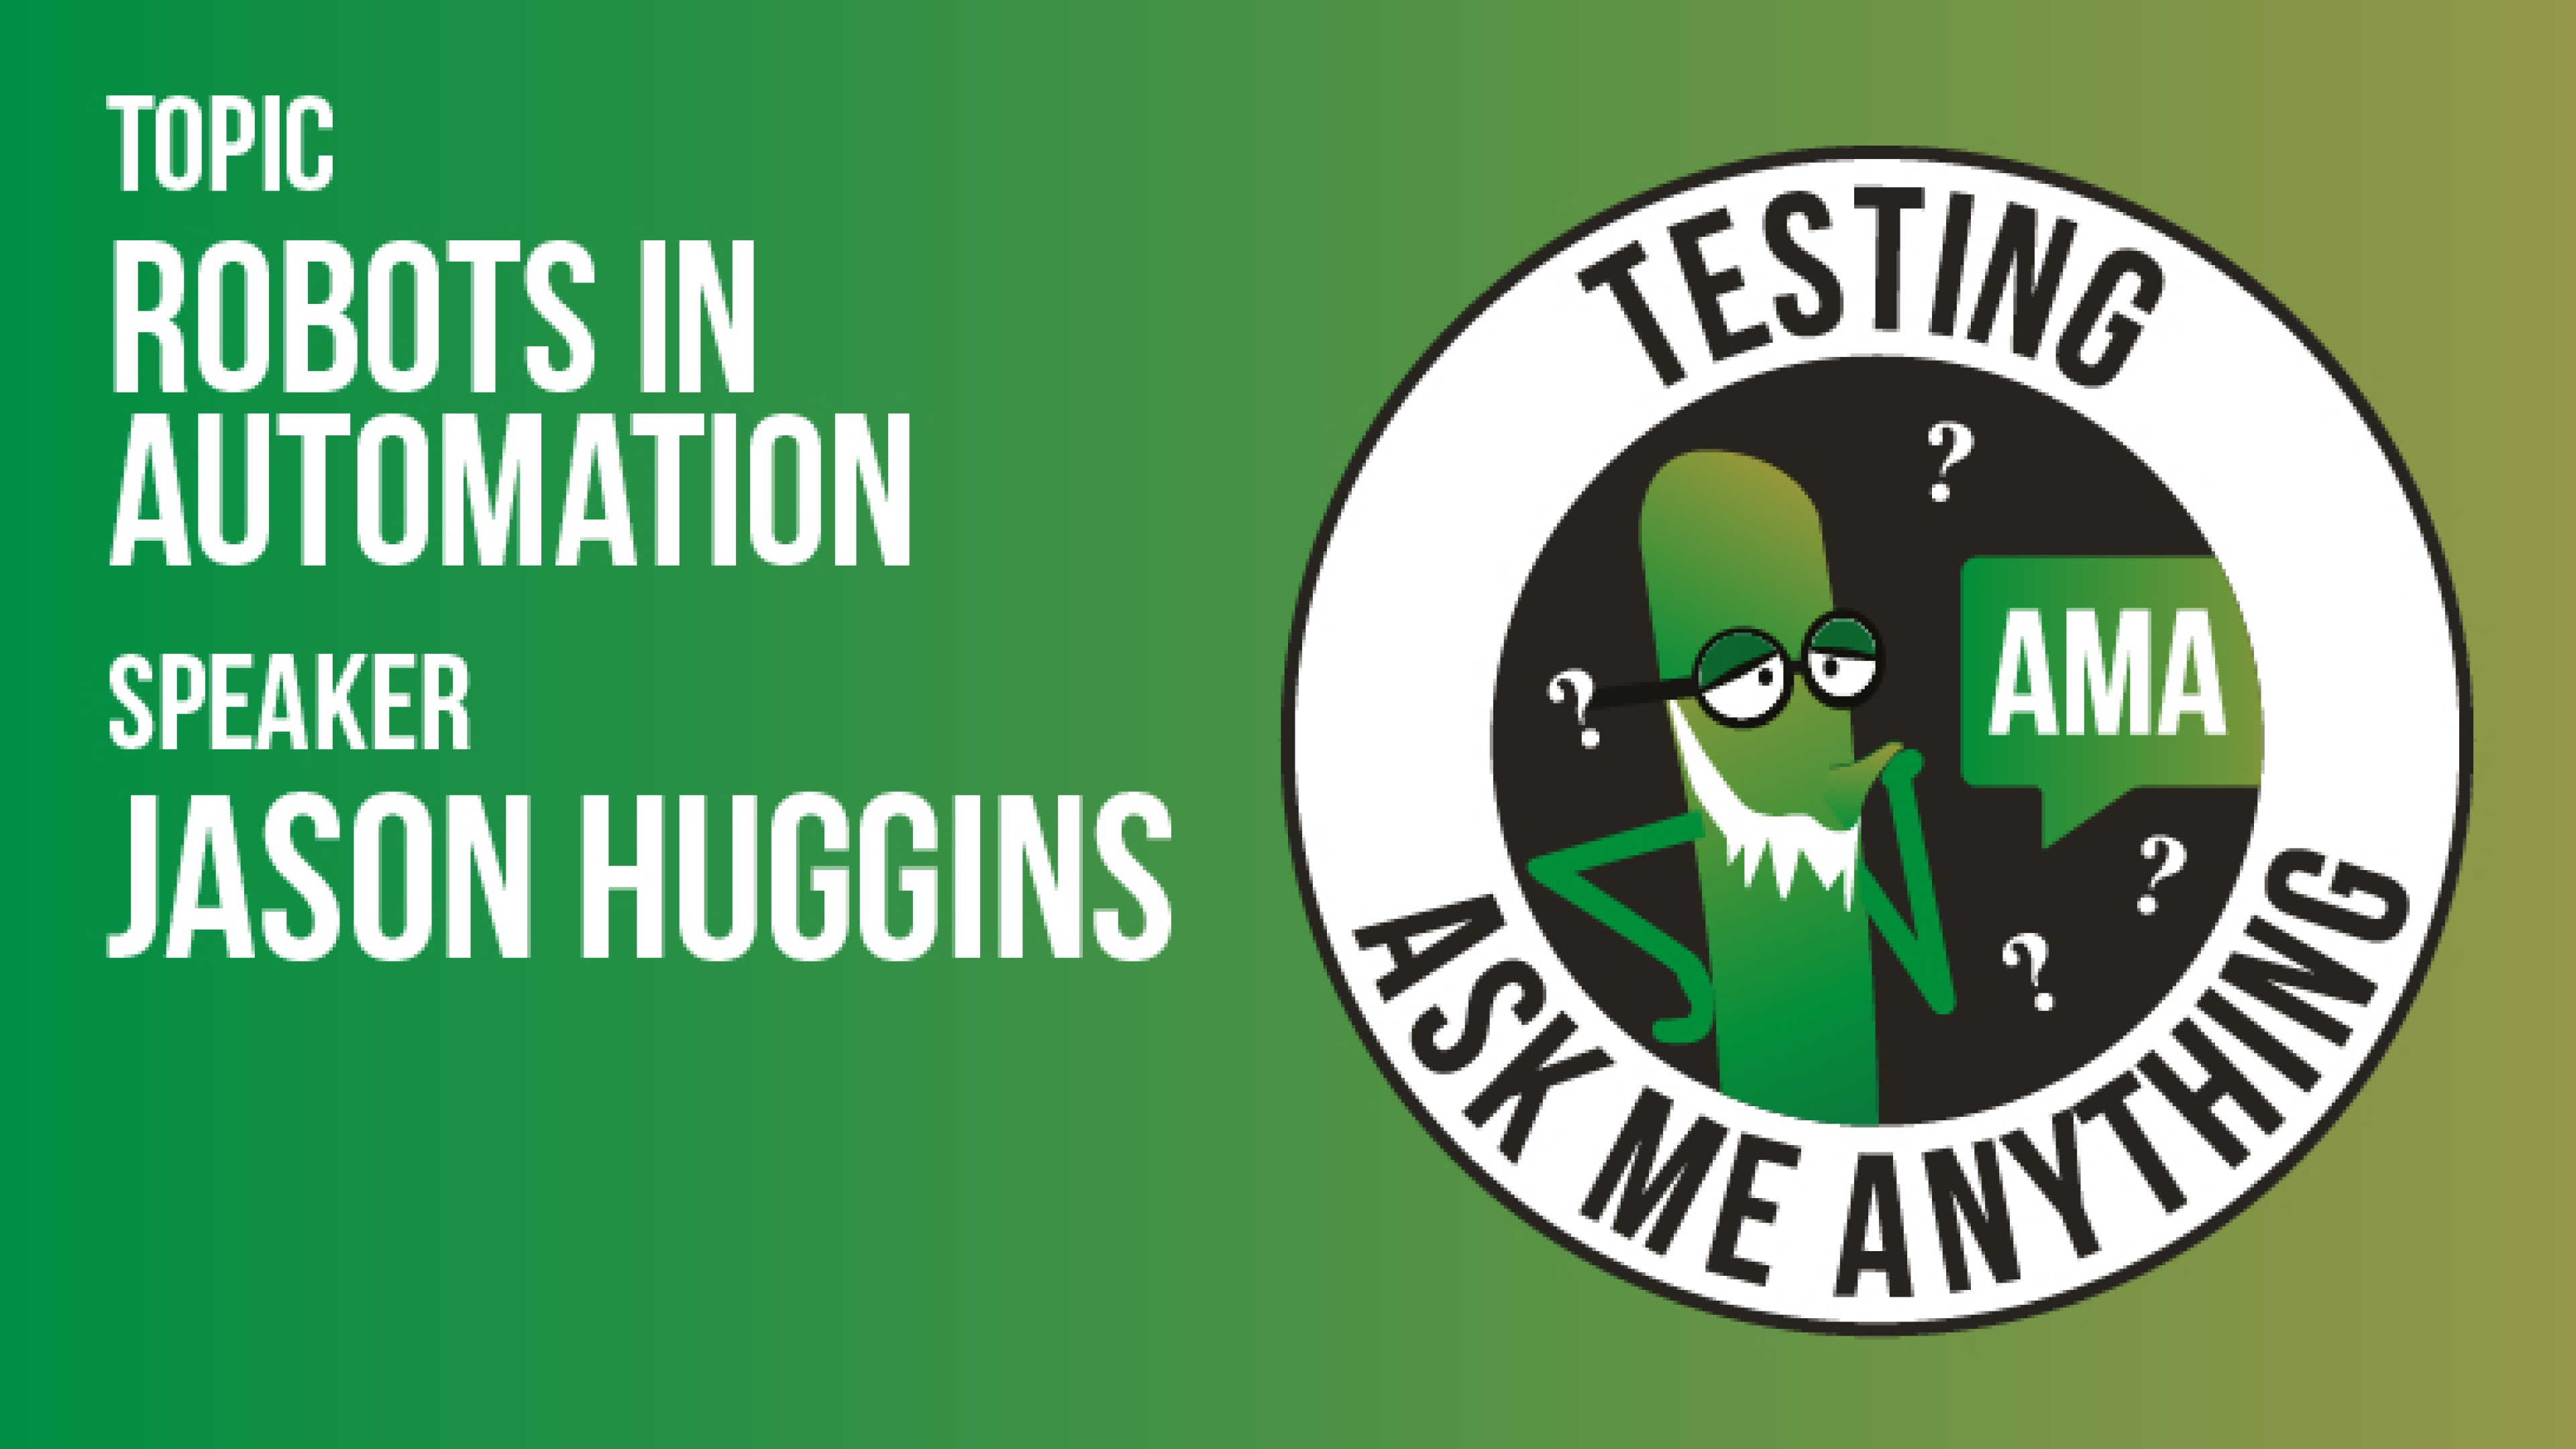 Testing Ask Me Anything - Robots in Automation - Jason Huggins